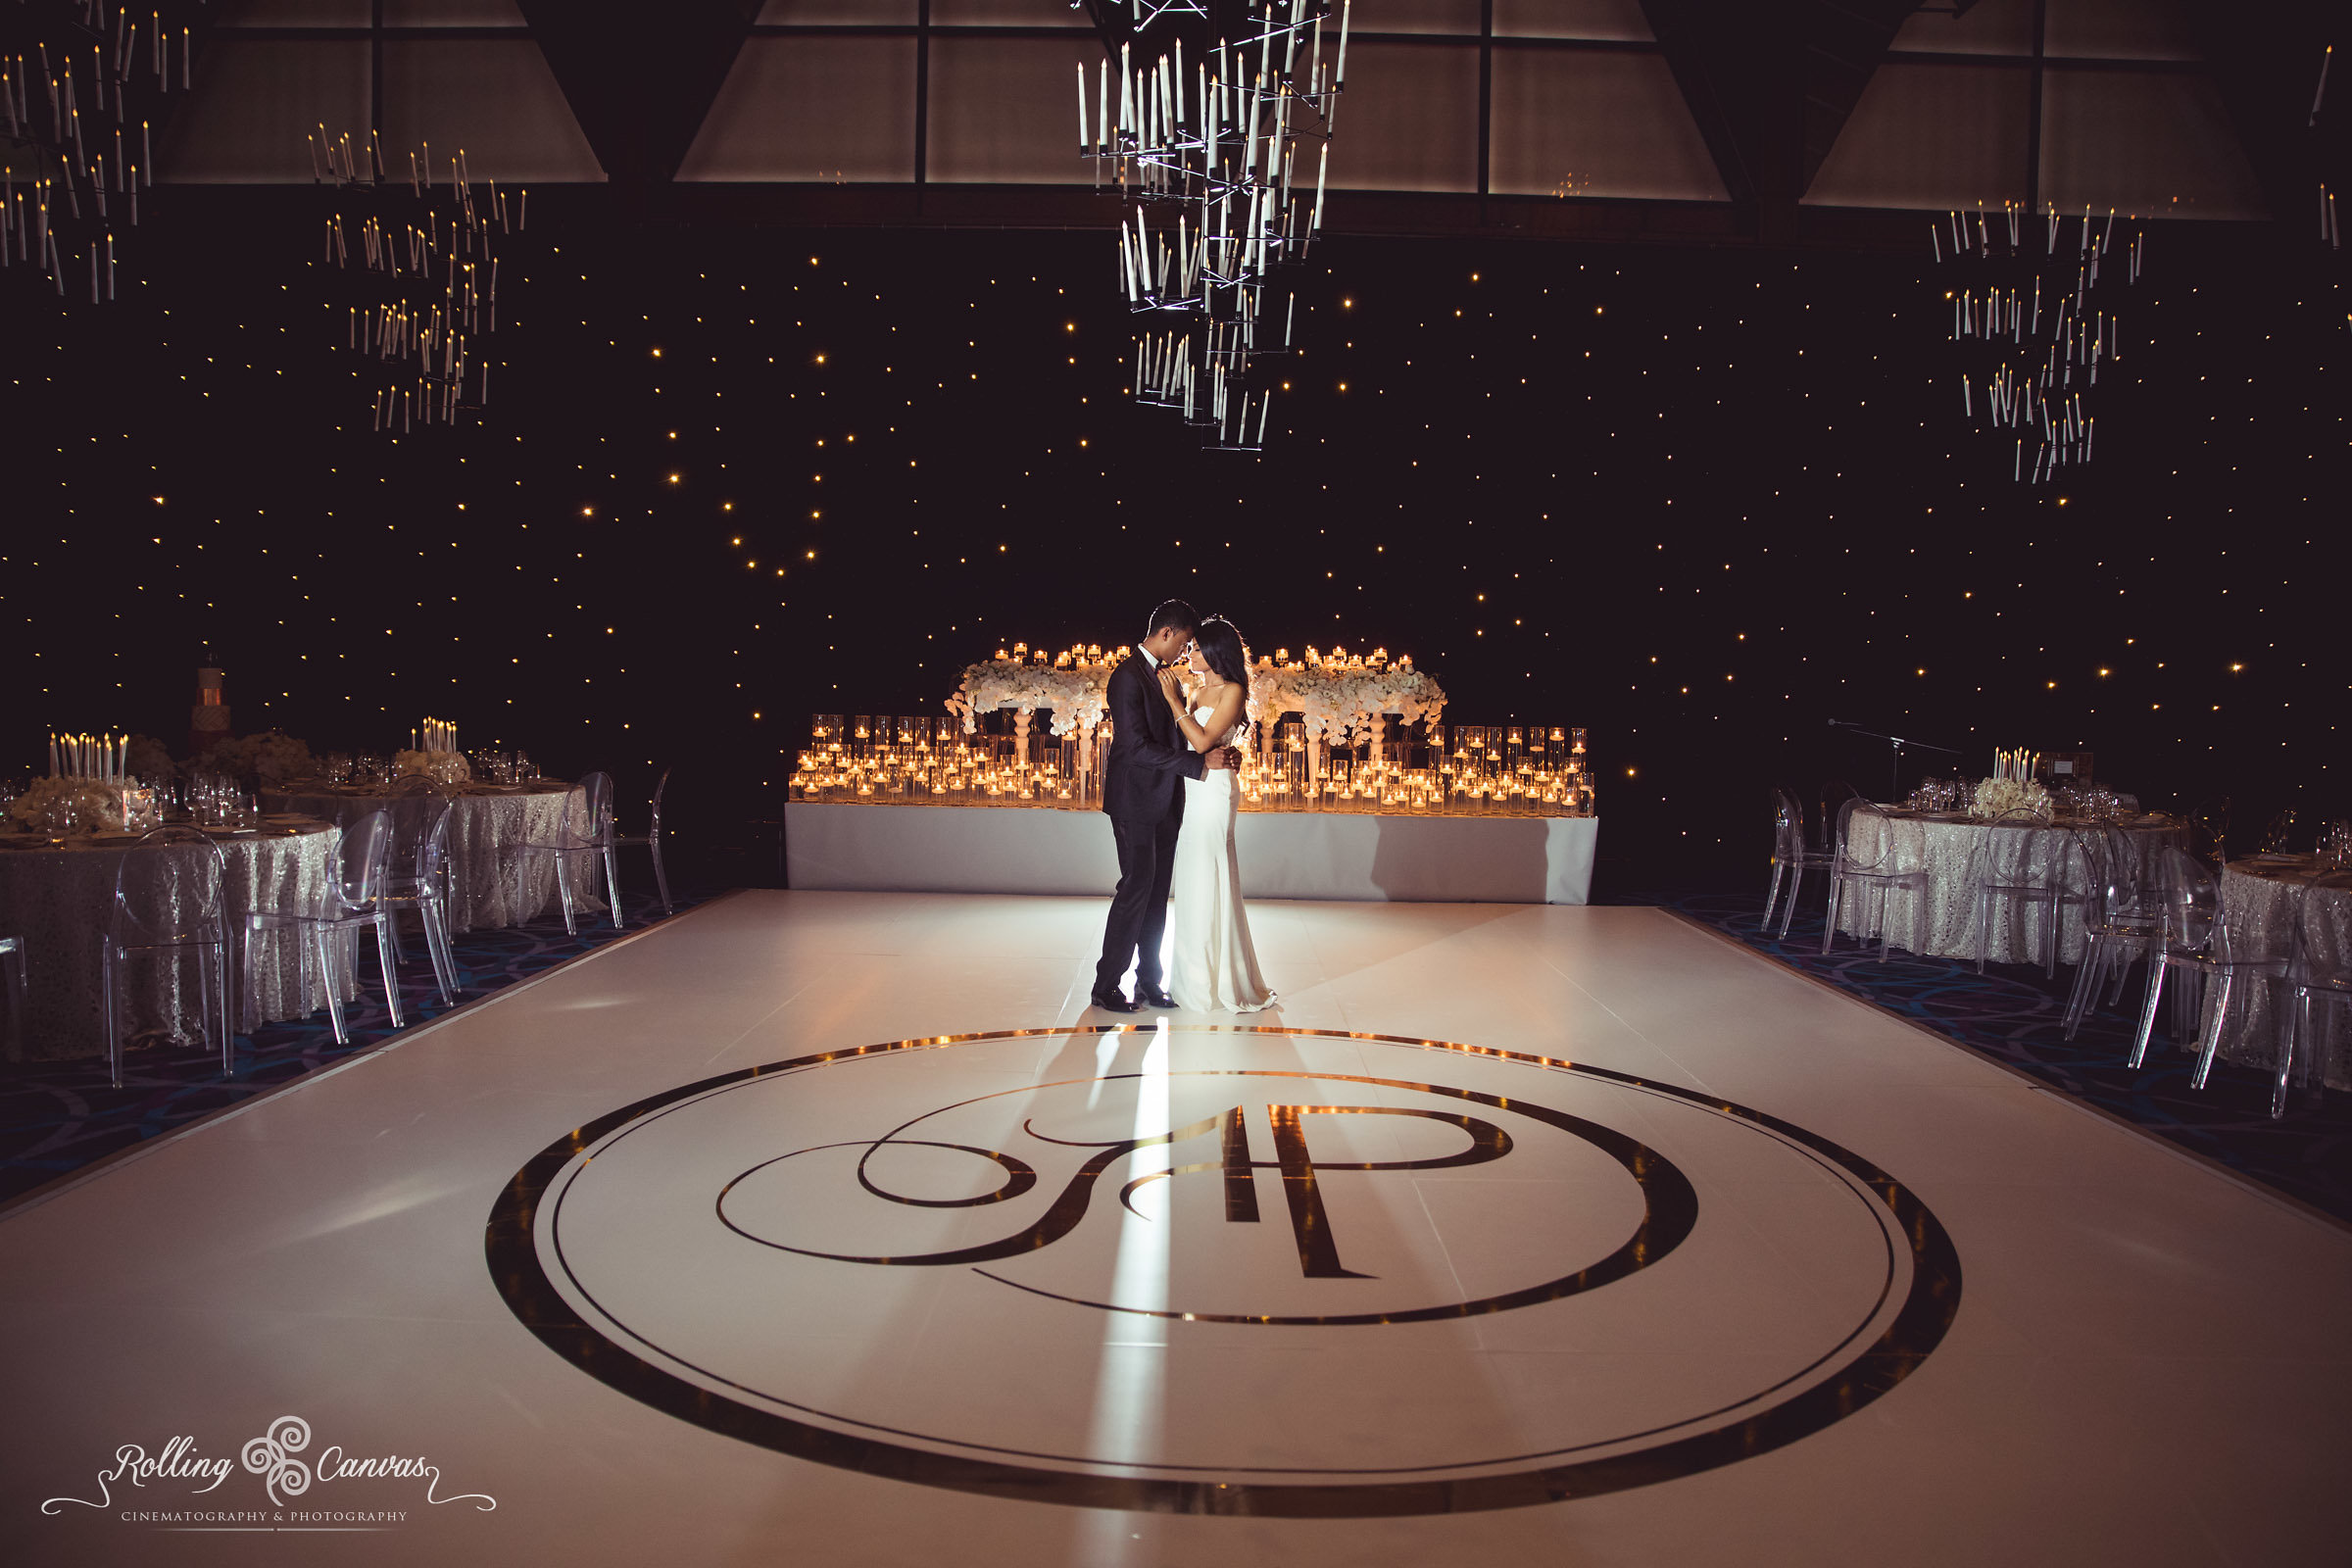 Wedding_Photography_Sydney_Rolling_Canvas_Presentation_black_white_elegant_reception_chandeliers_fairylights_white_dancefloor_luxury_linen_decor_Hyatt_Regency_Sydney-57242.jpg